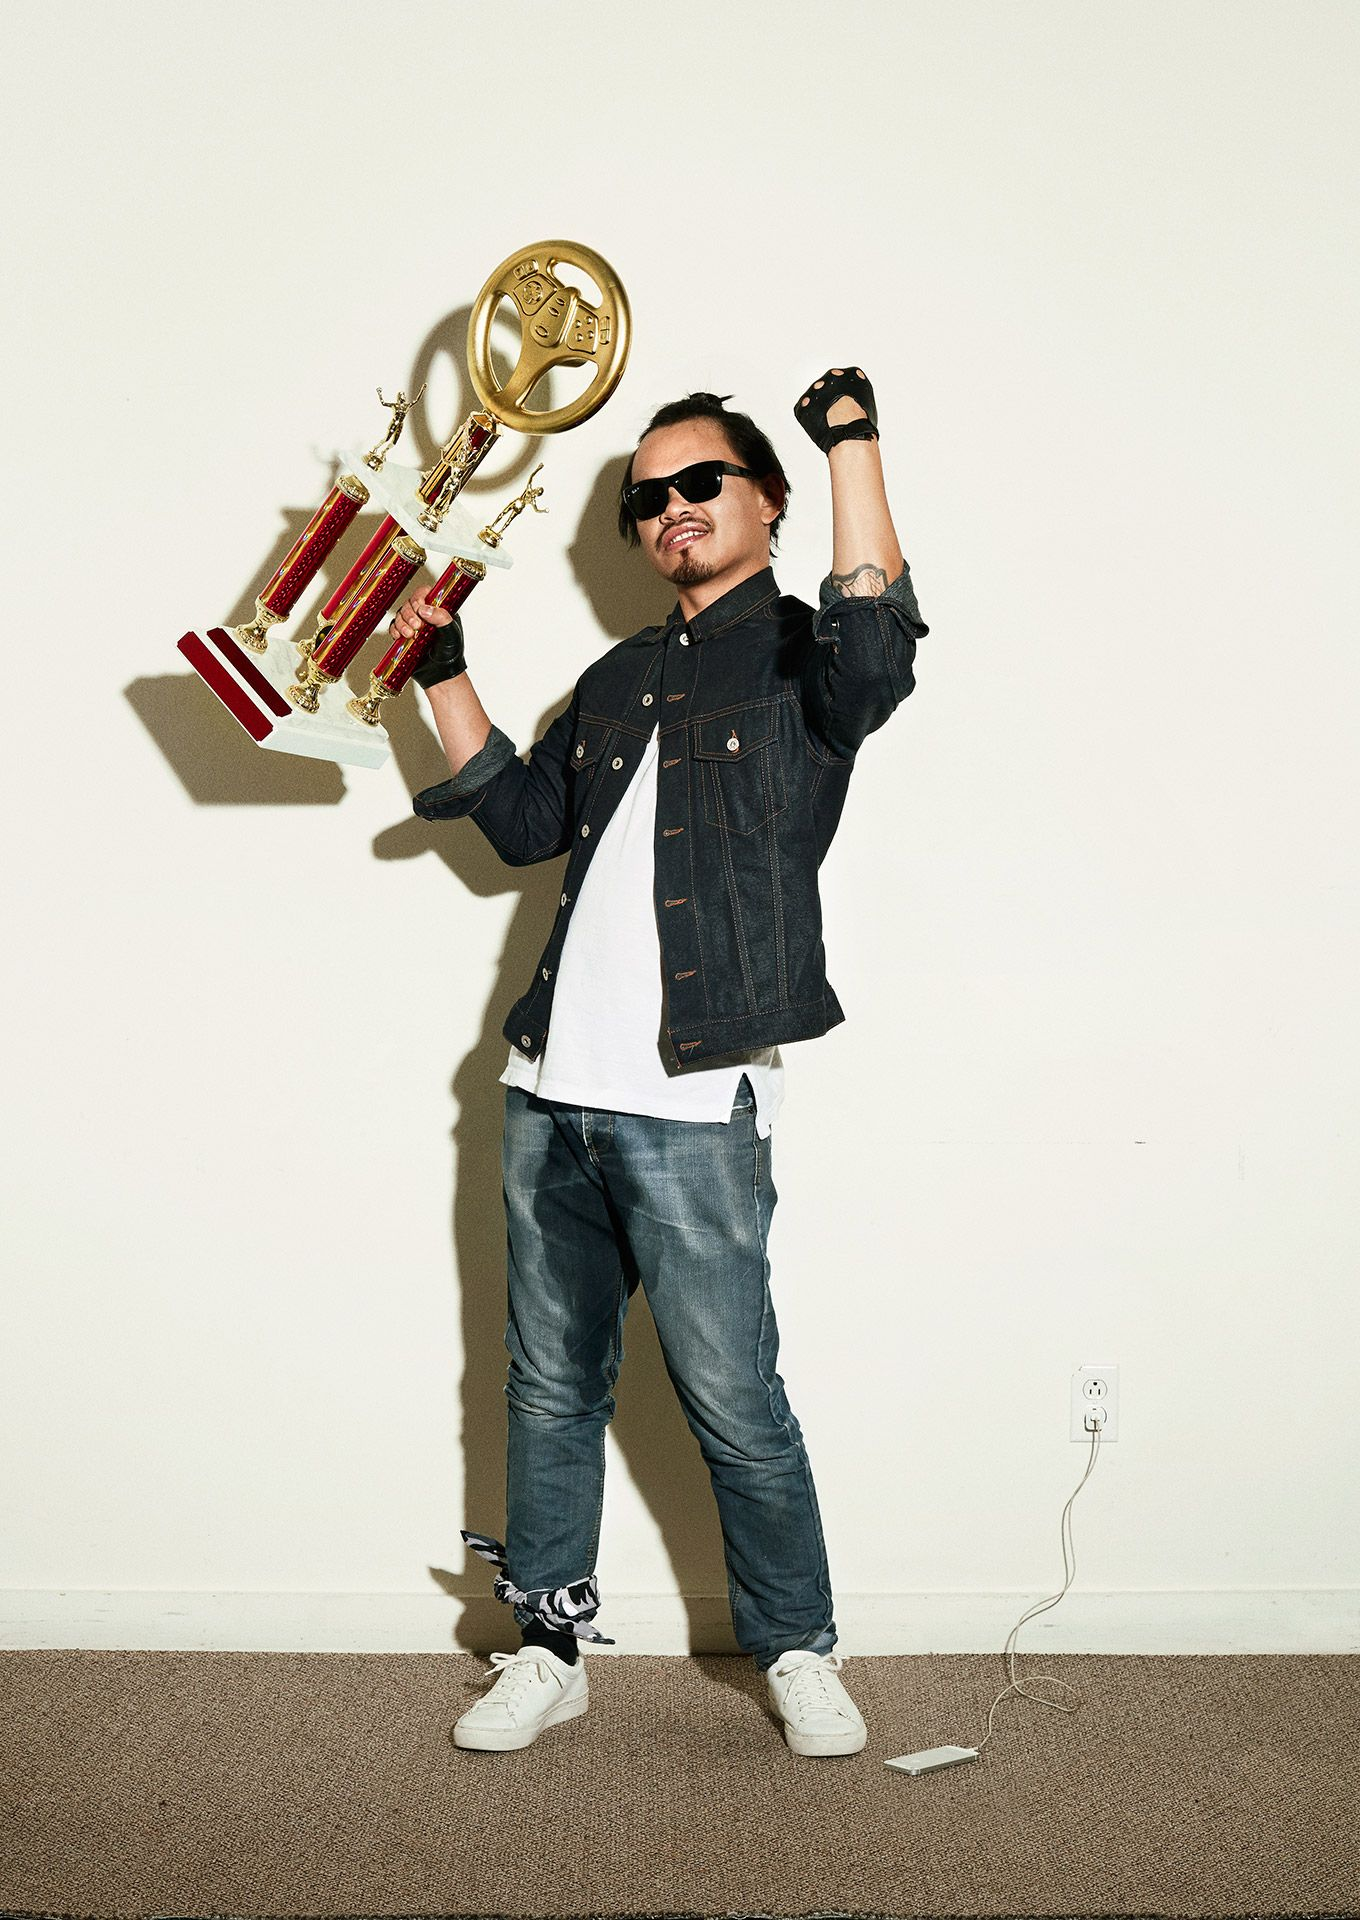 archetype of asian gamer boy wearing sunglasses peed in his pants holding trophy victoriously by Jocelyn Michel for Vovlan with DentsuBos